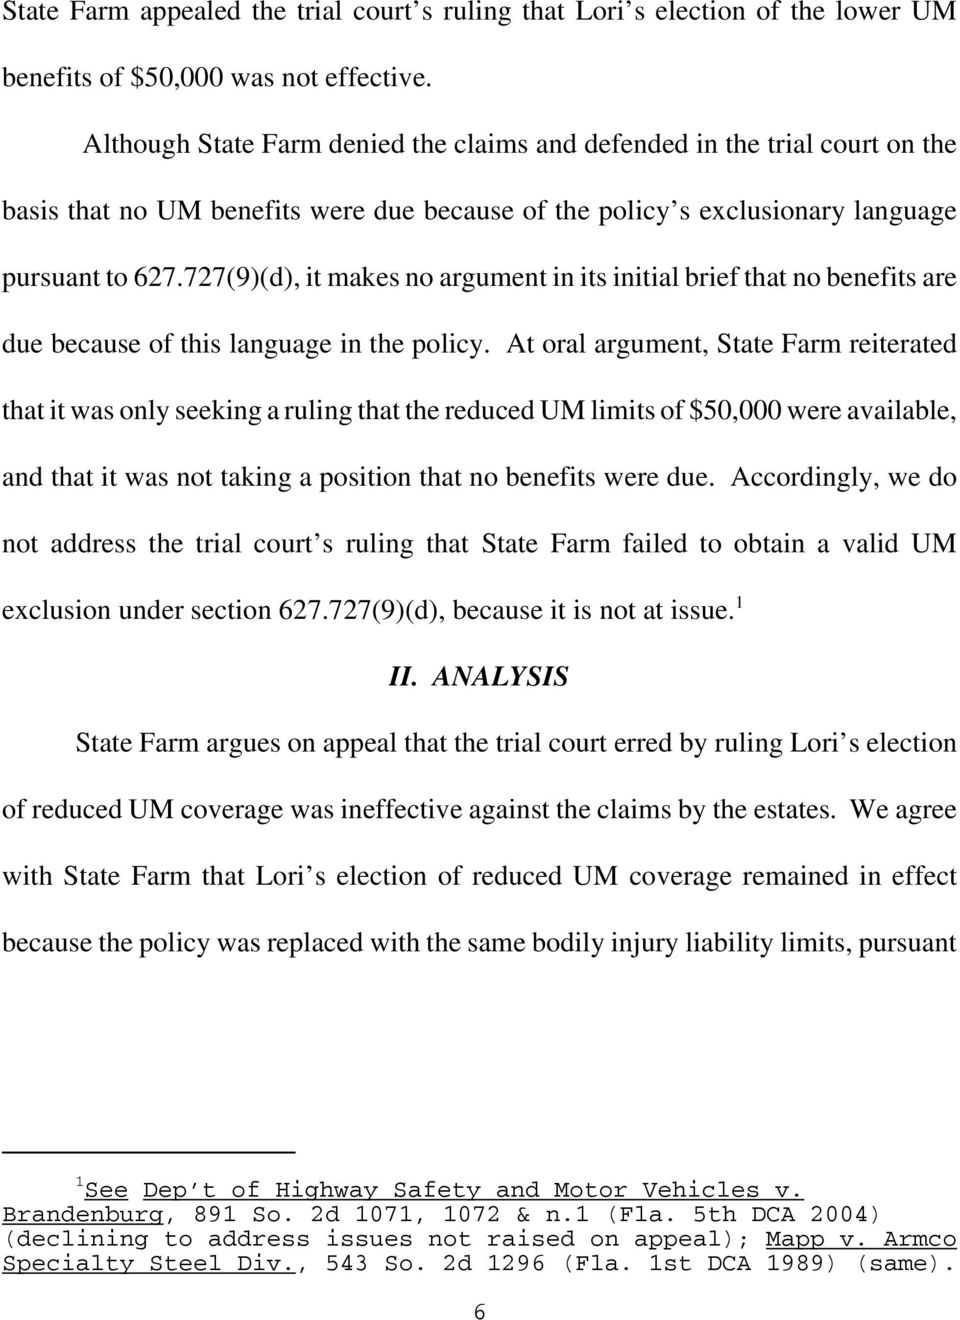 727(9)(d), it makes no argument in its initial brief that no benefits are due because of this language in the policy.